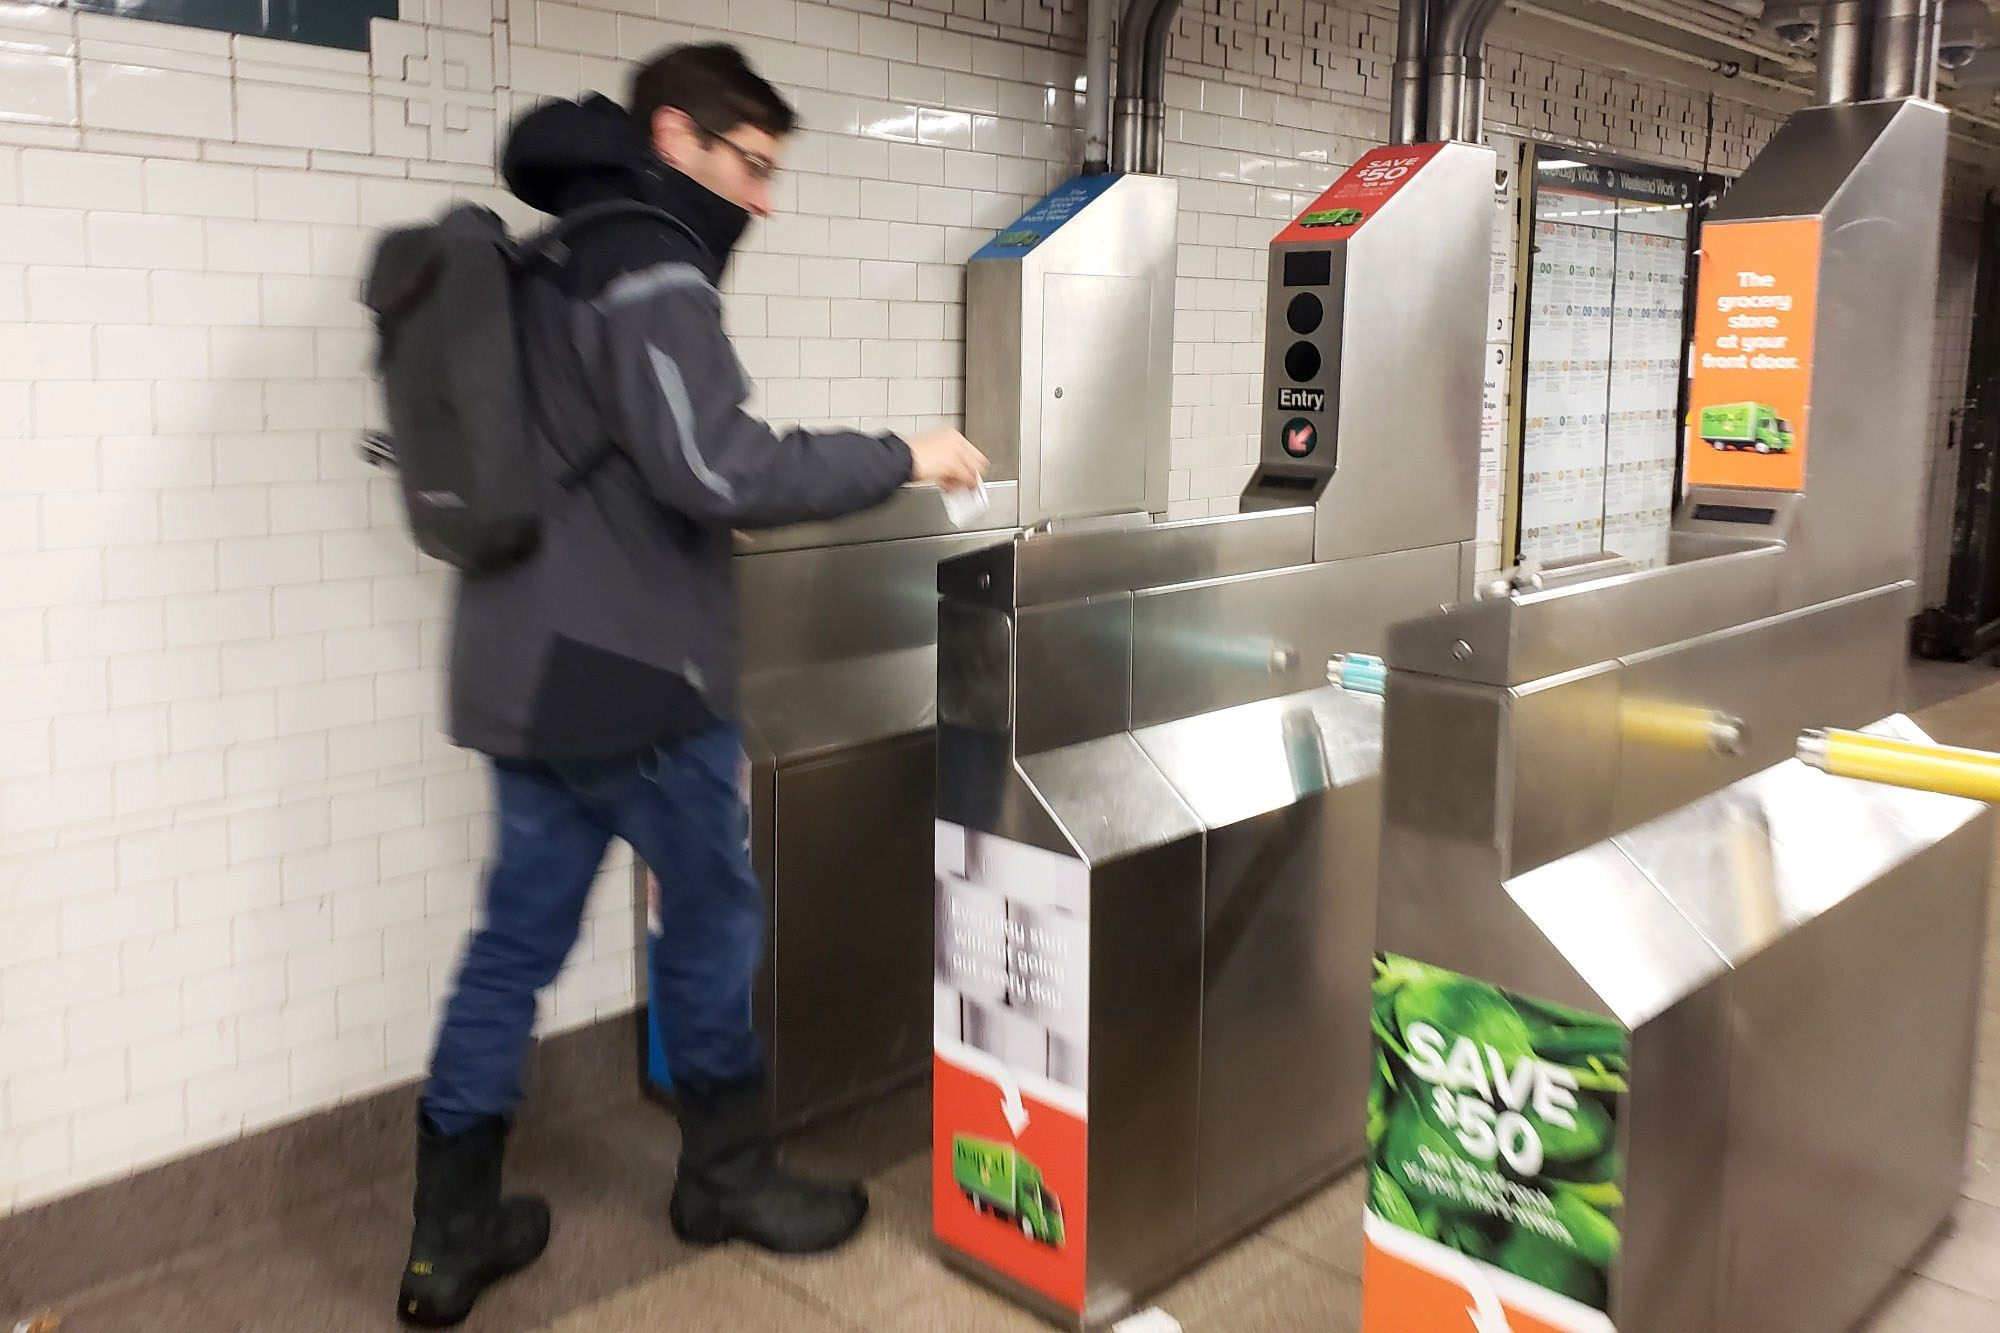 Finally Contactless Payments Coming to NYC Subway and